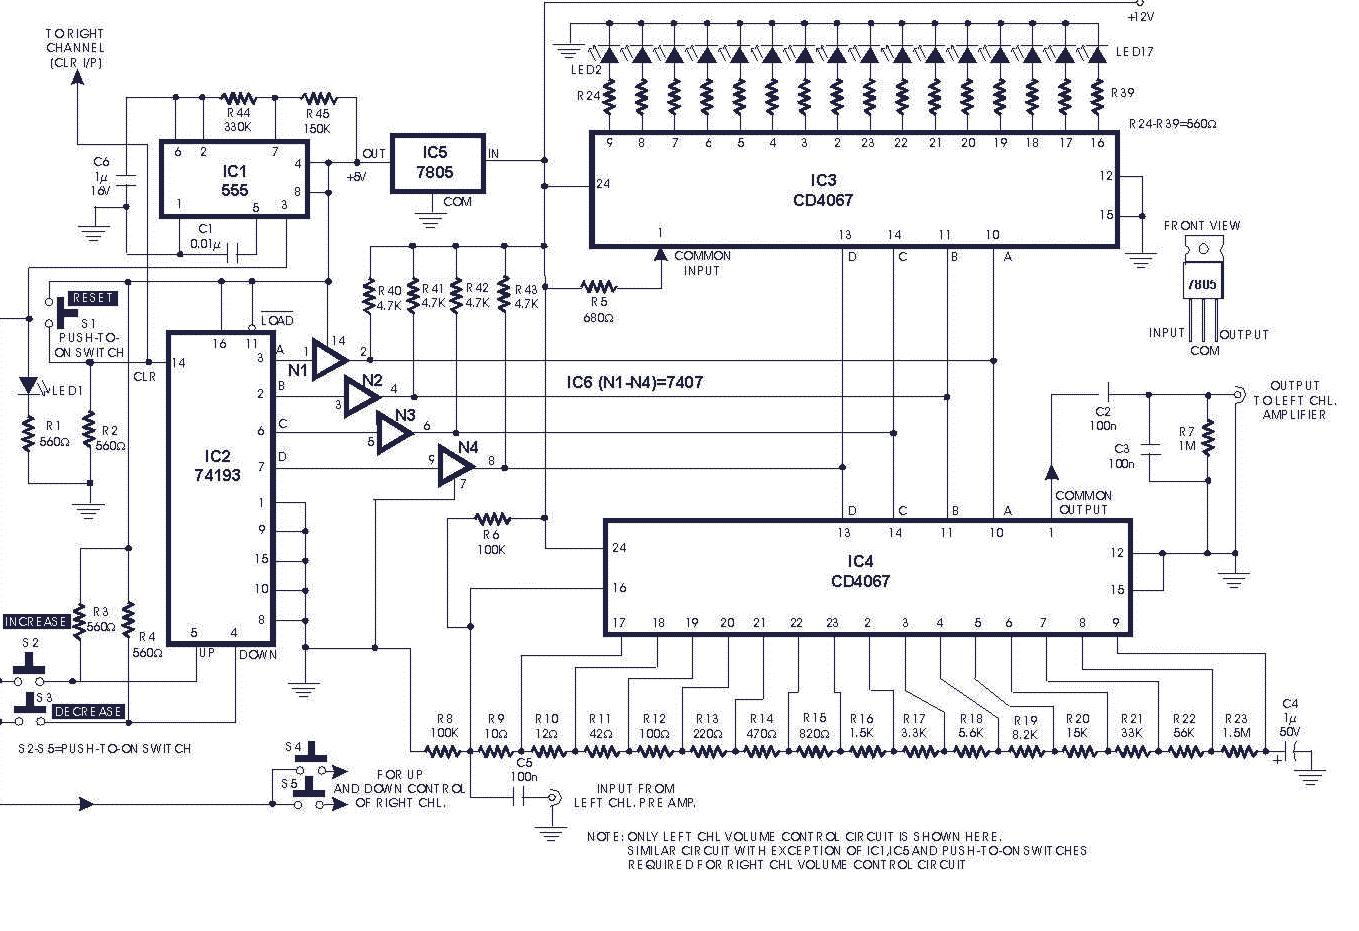 speaker volume control wiring diagram obd2 ford digital circuit